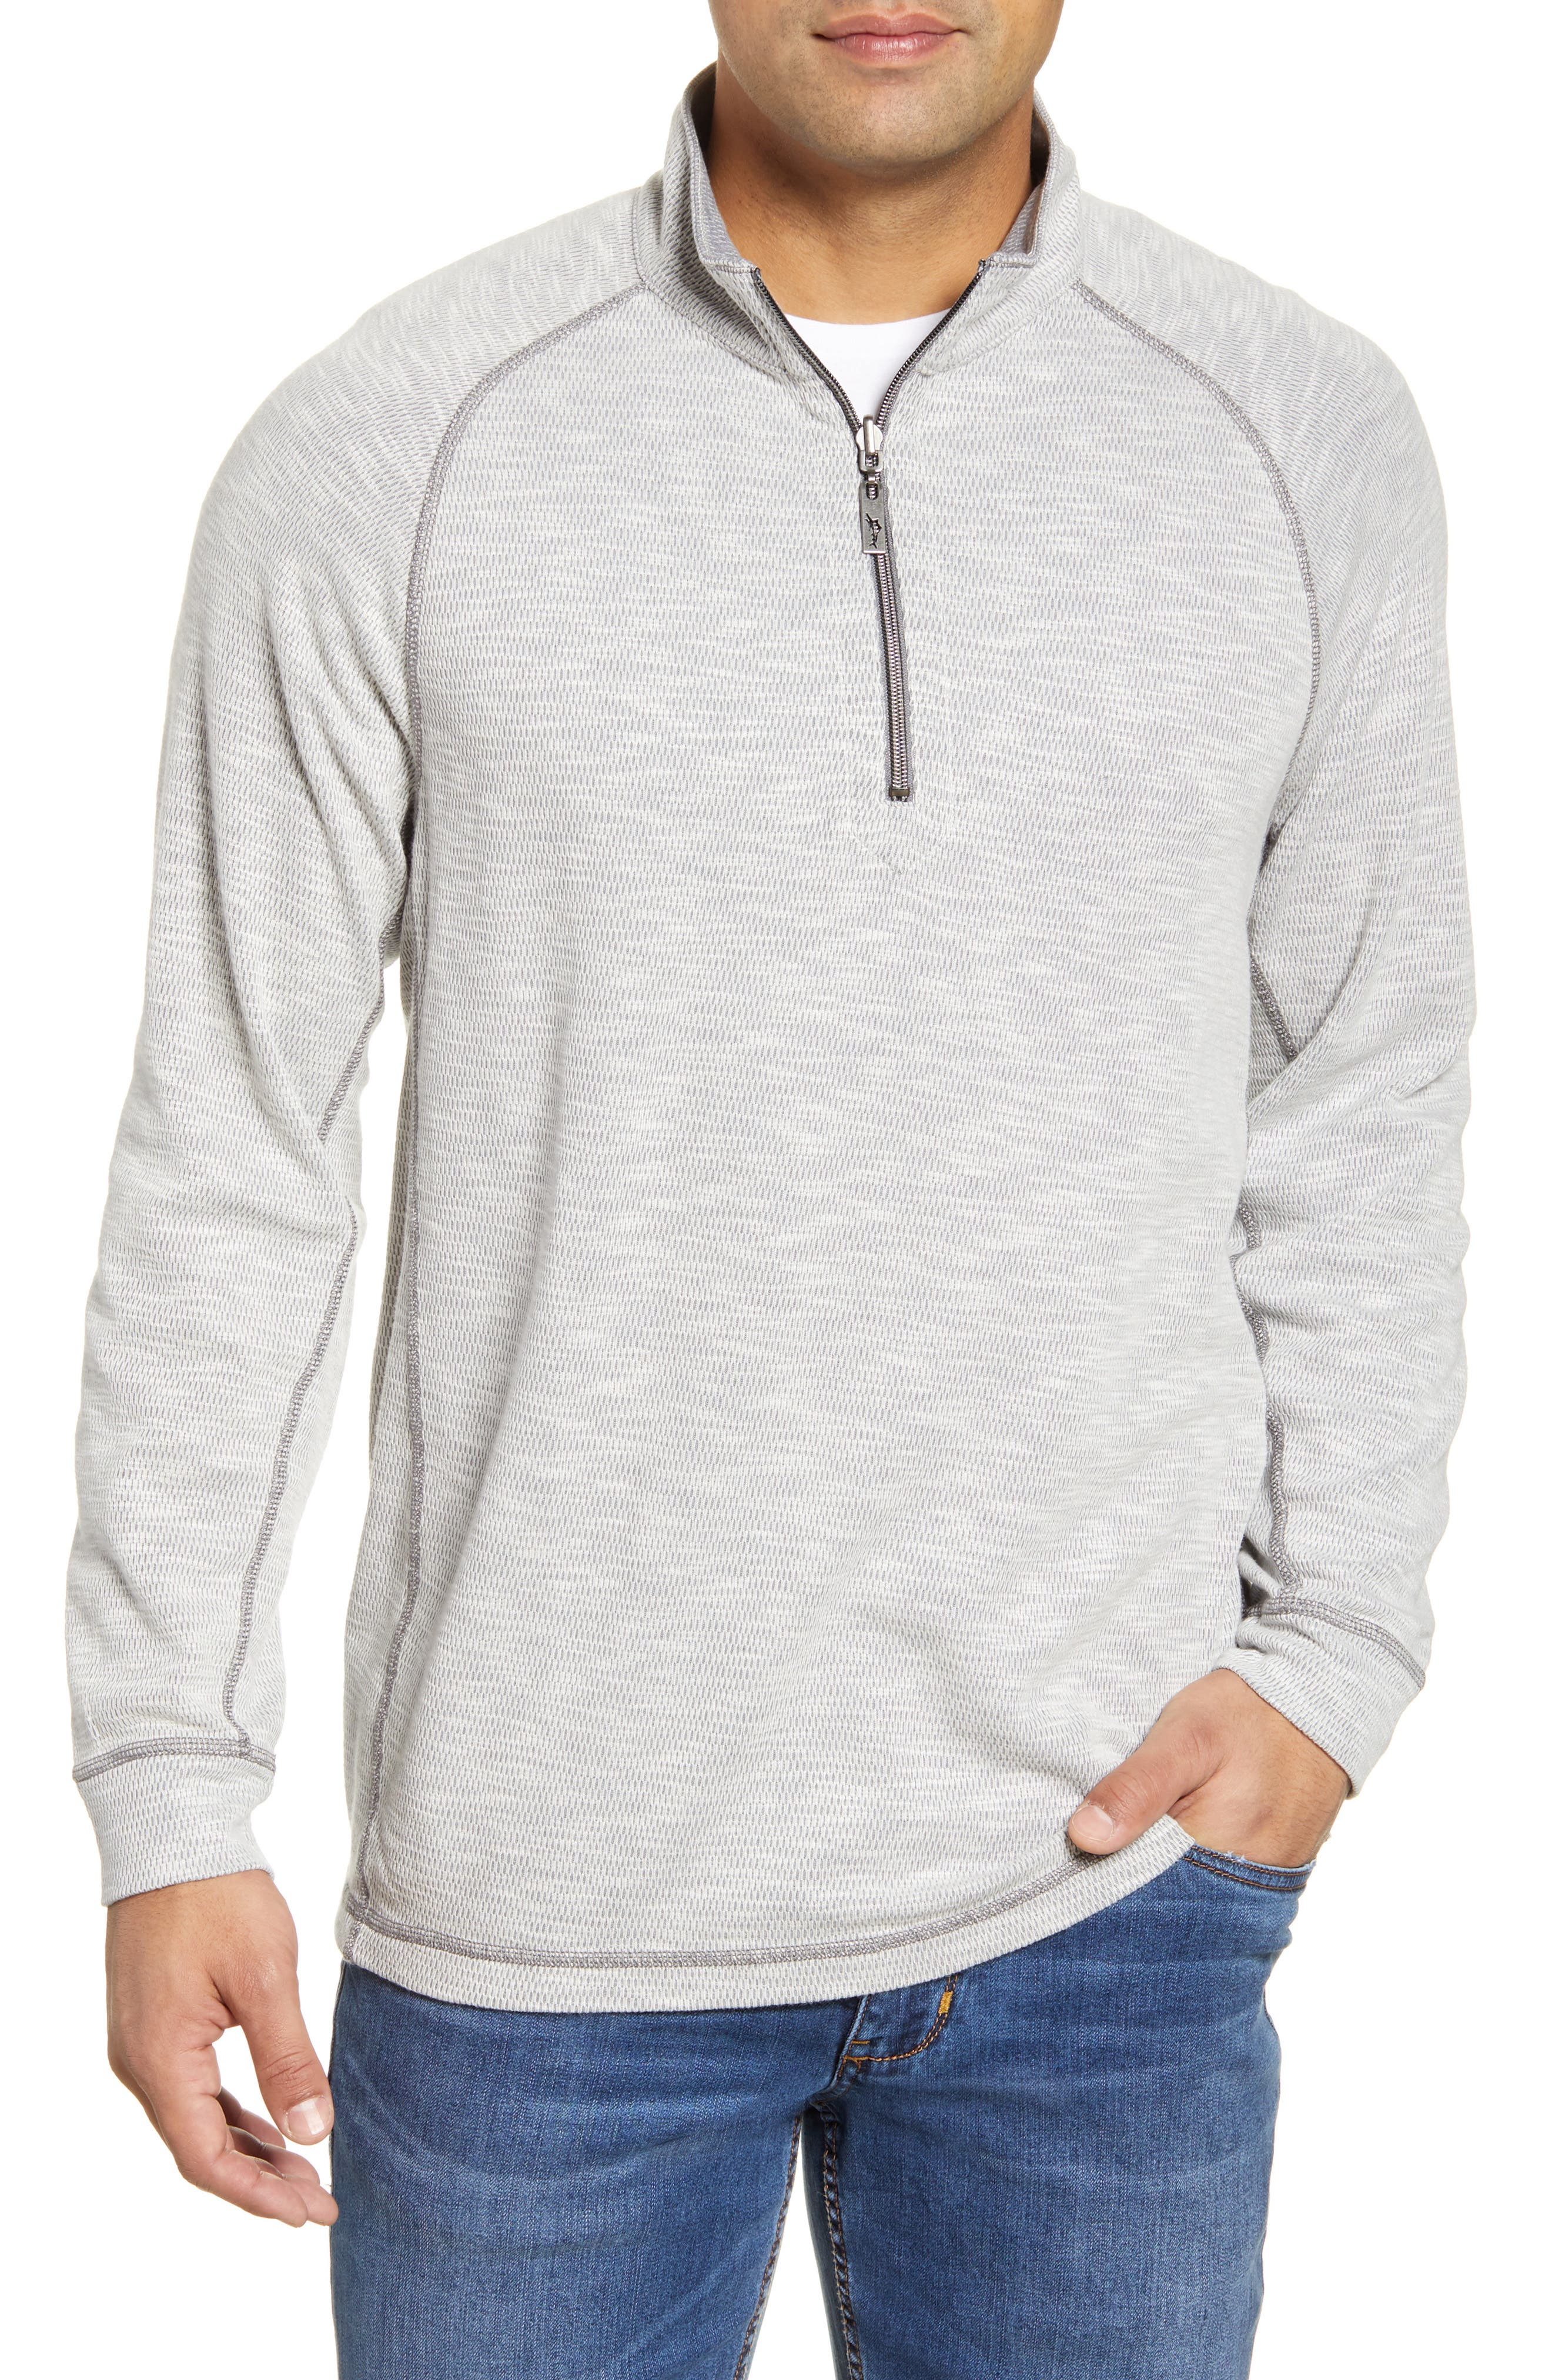 Image of Tommy Bahama Barrier Beach Reversible Half Zip Pullover